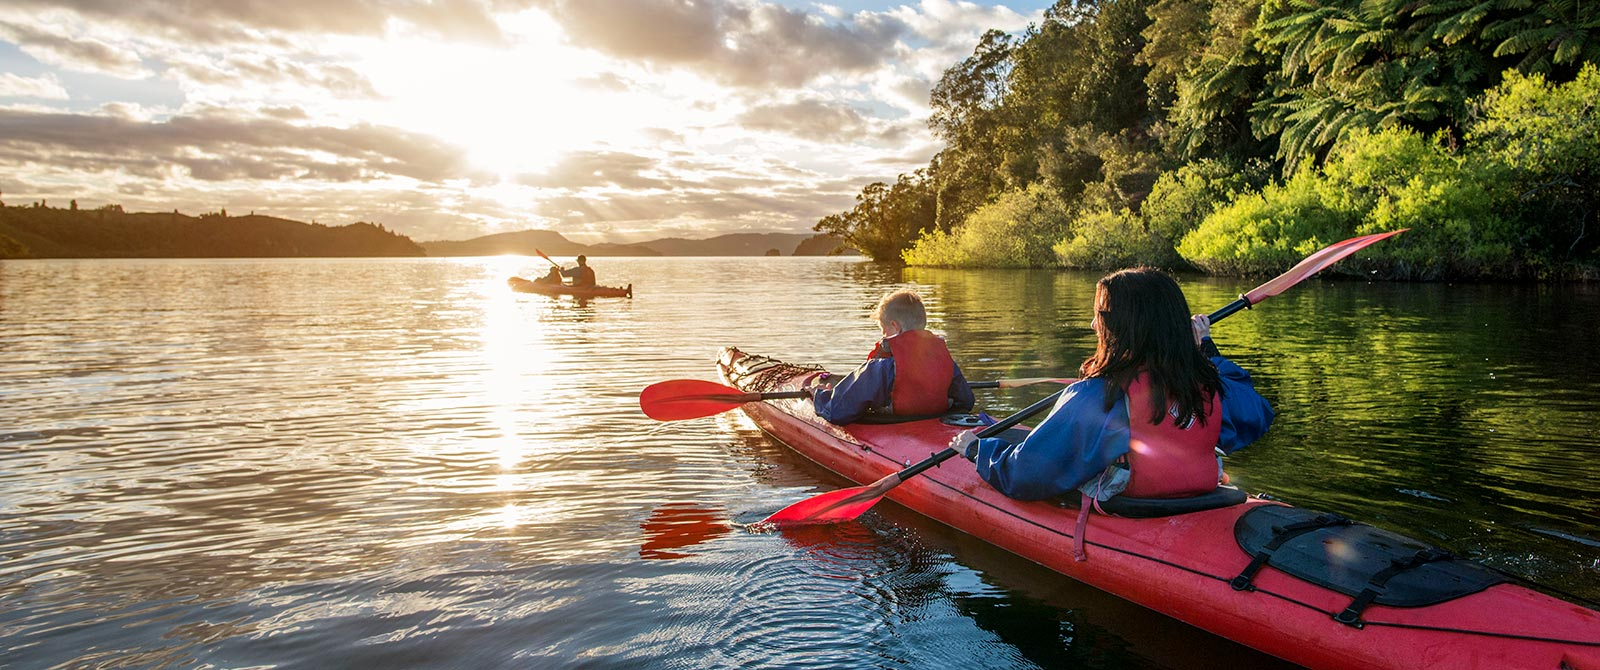 Kayaking on Lake Rotoiti, Rotorua - Book Your Trip to New Zealand - New Zealand Travel Agency